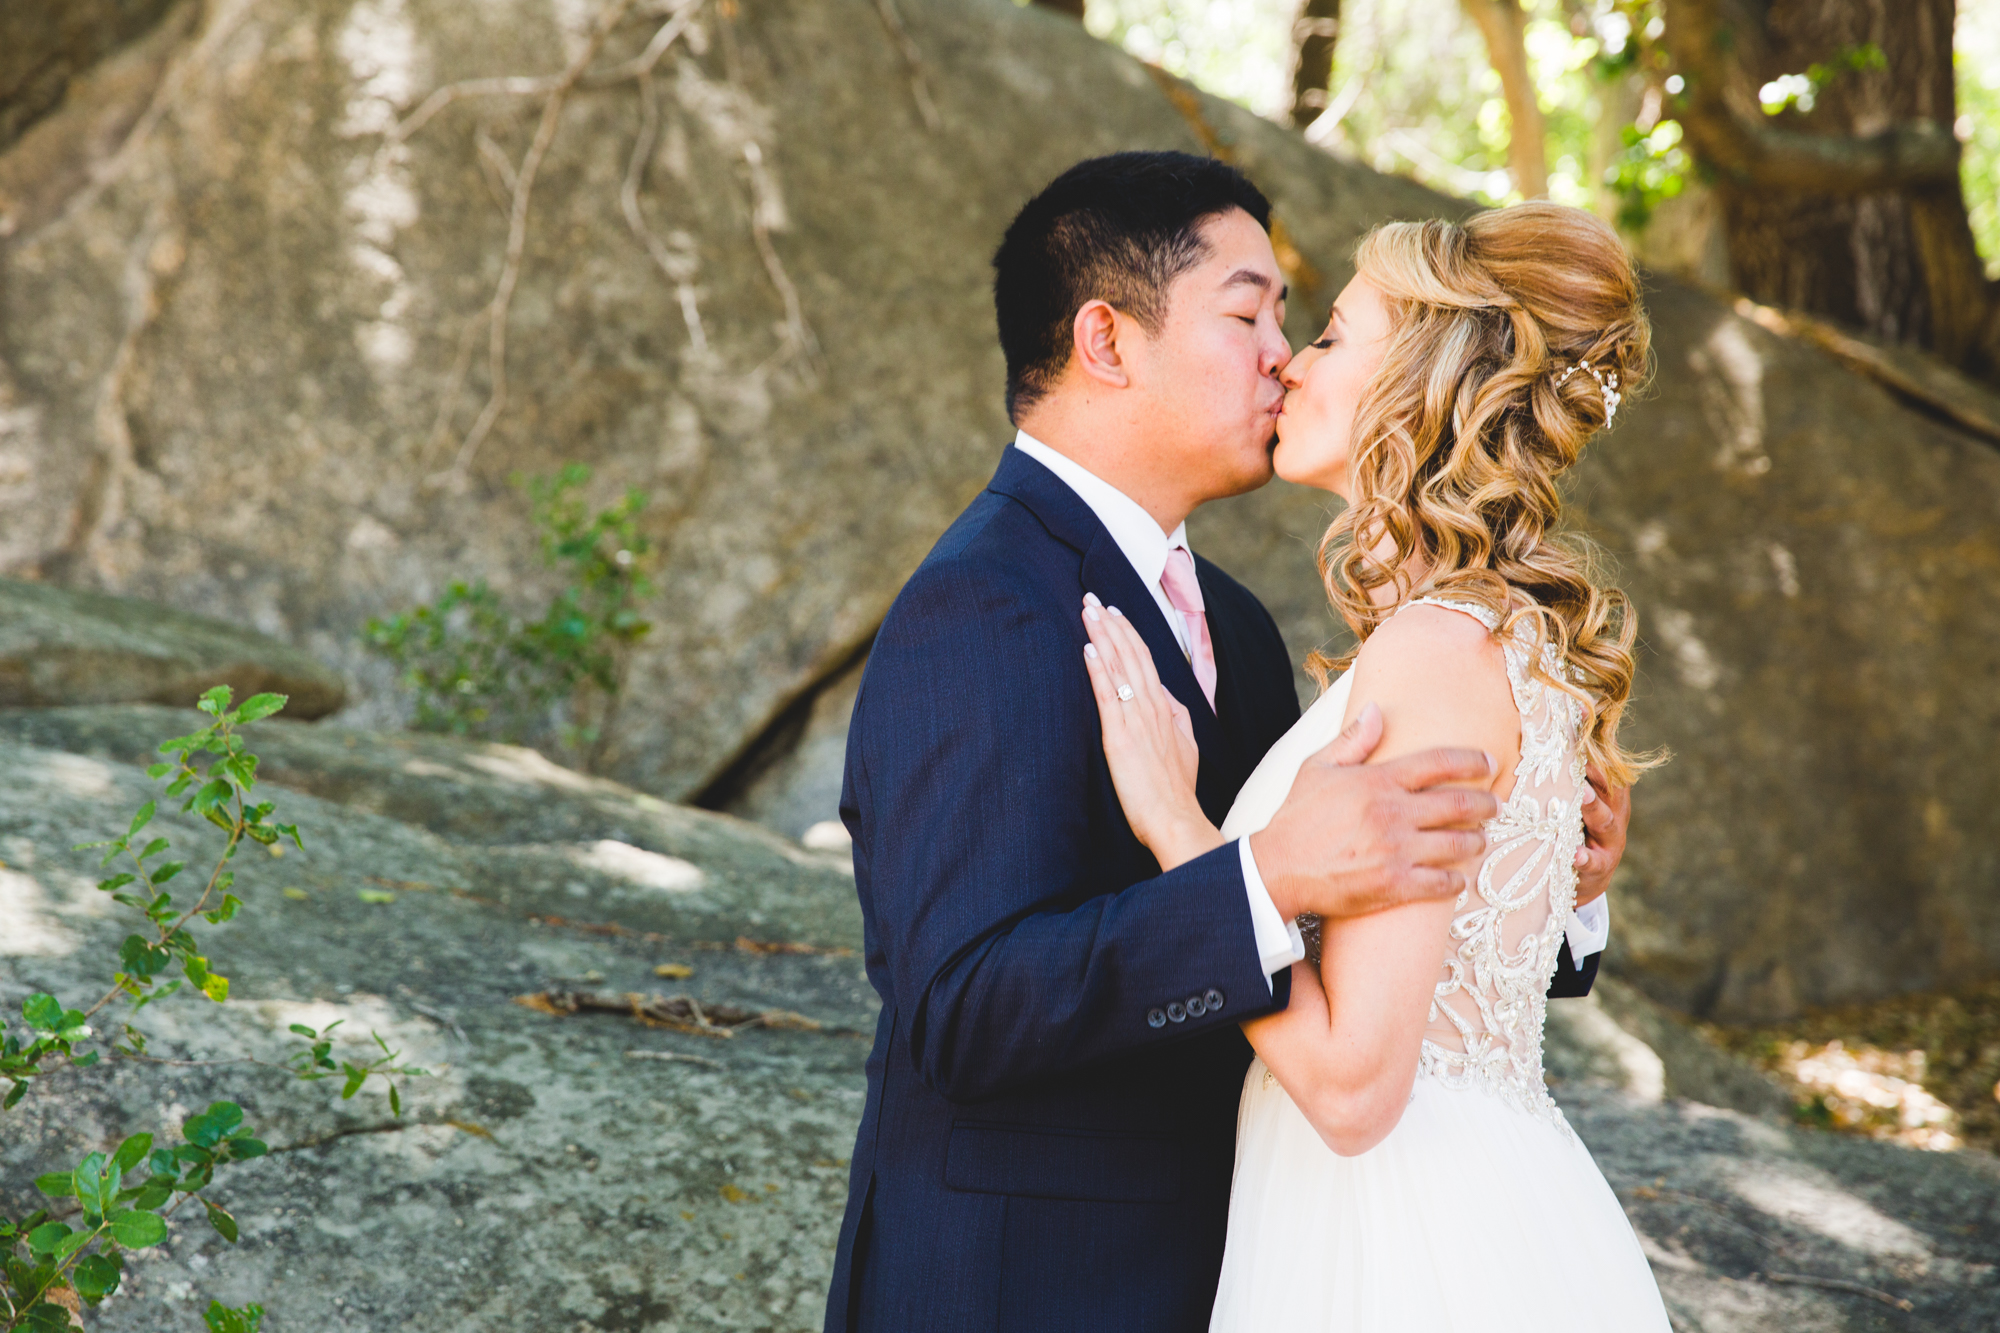 sd wedding-13.jpg